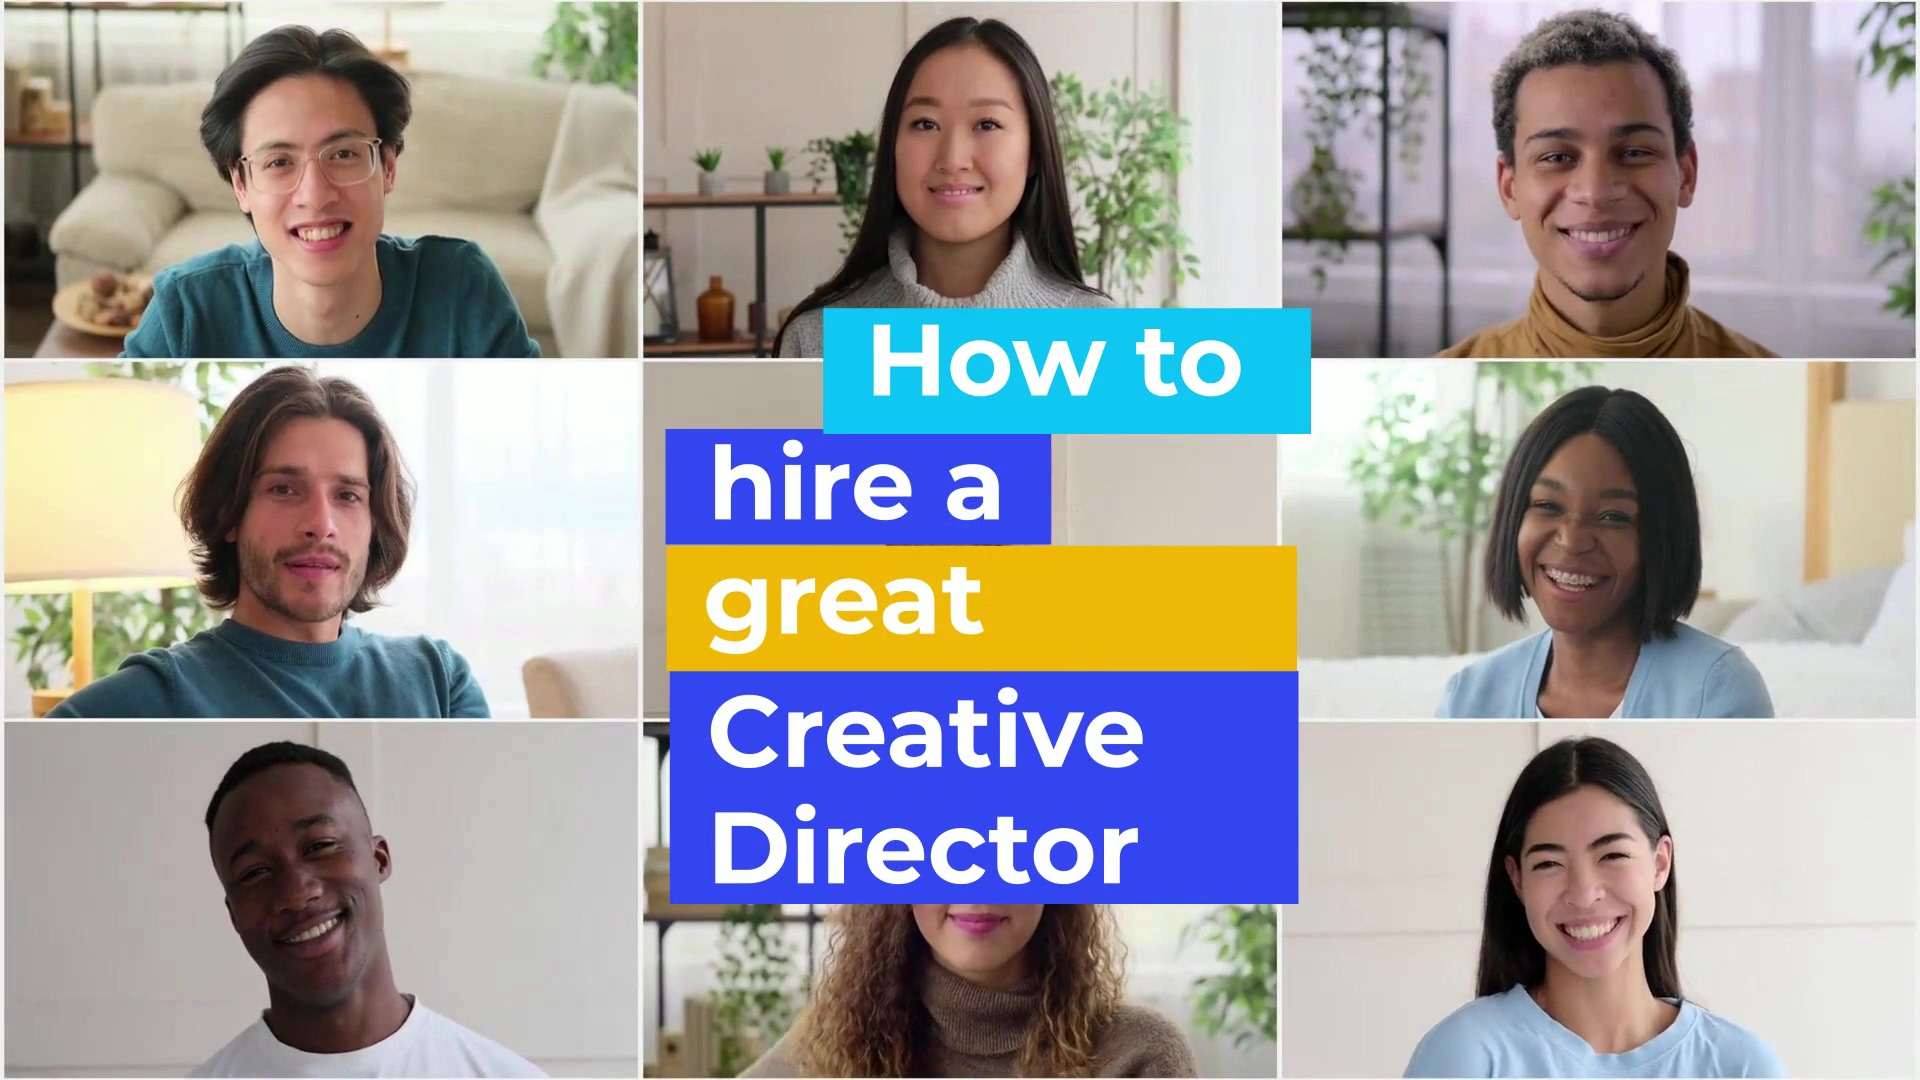 Quick Hiring Tips to Hire A Creative Director